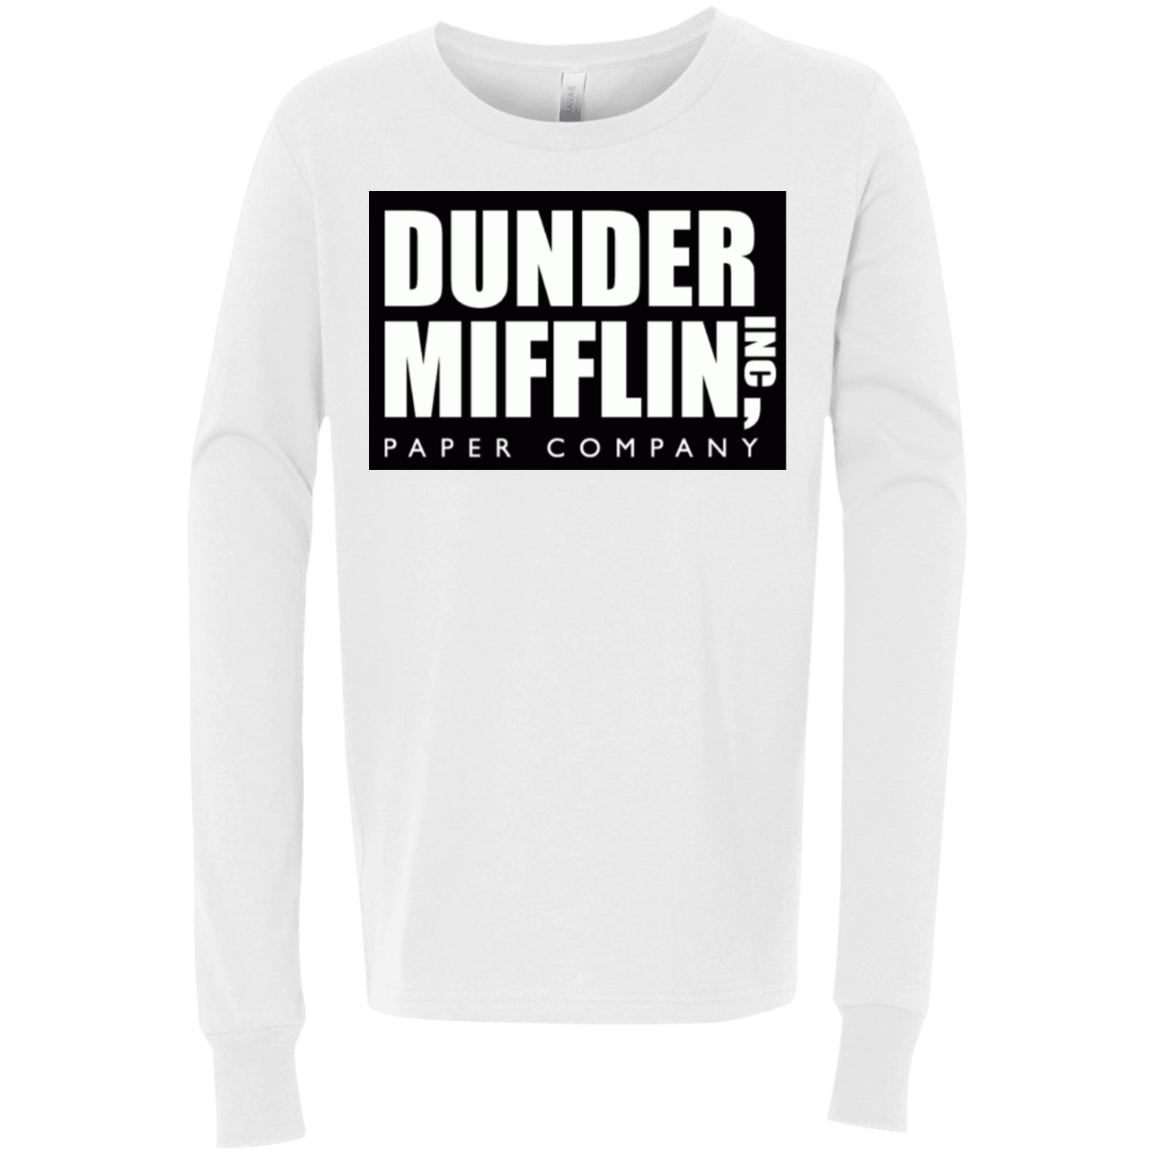 Dunder Mifflin 3501Y Bella + Canvas Youth Jersey LS T-Shirt